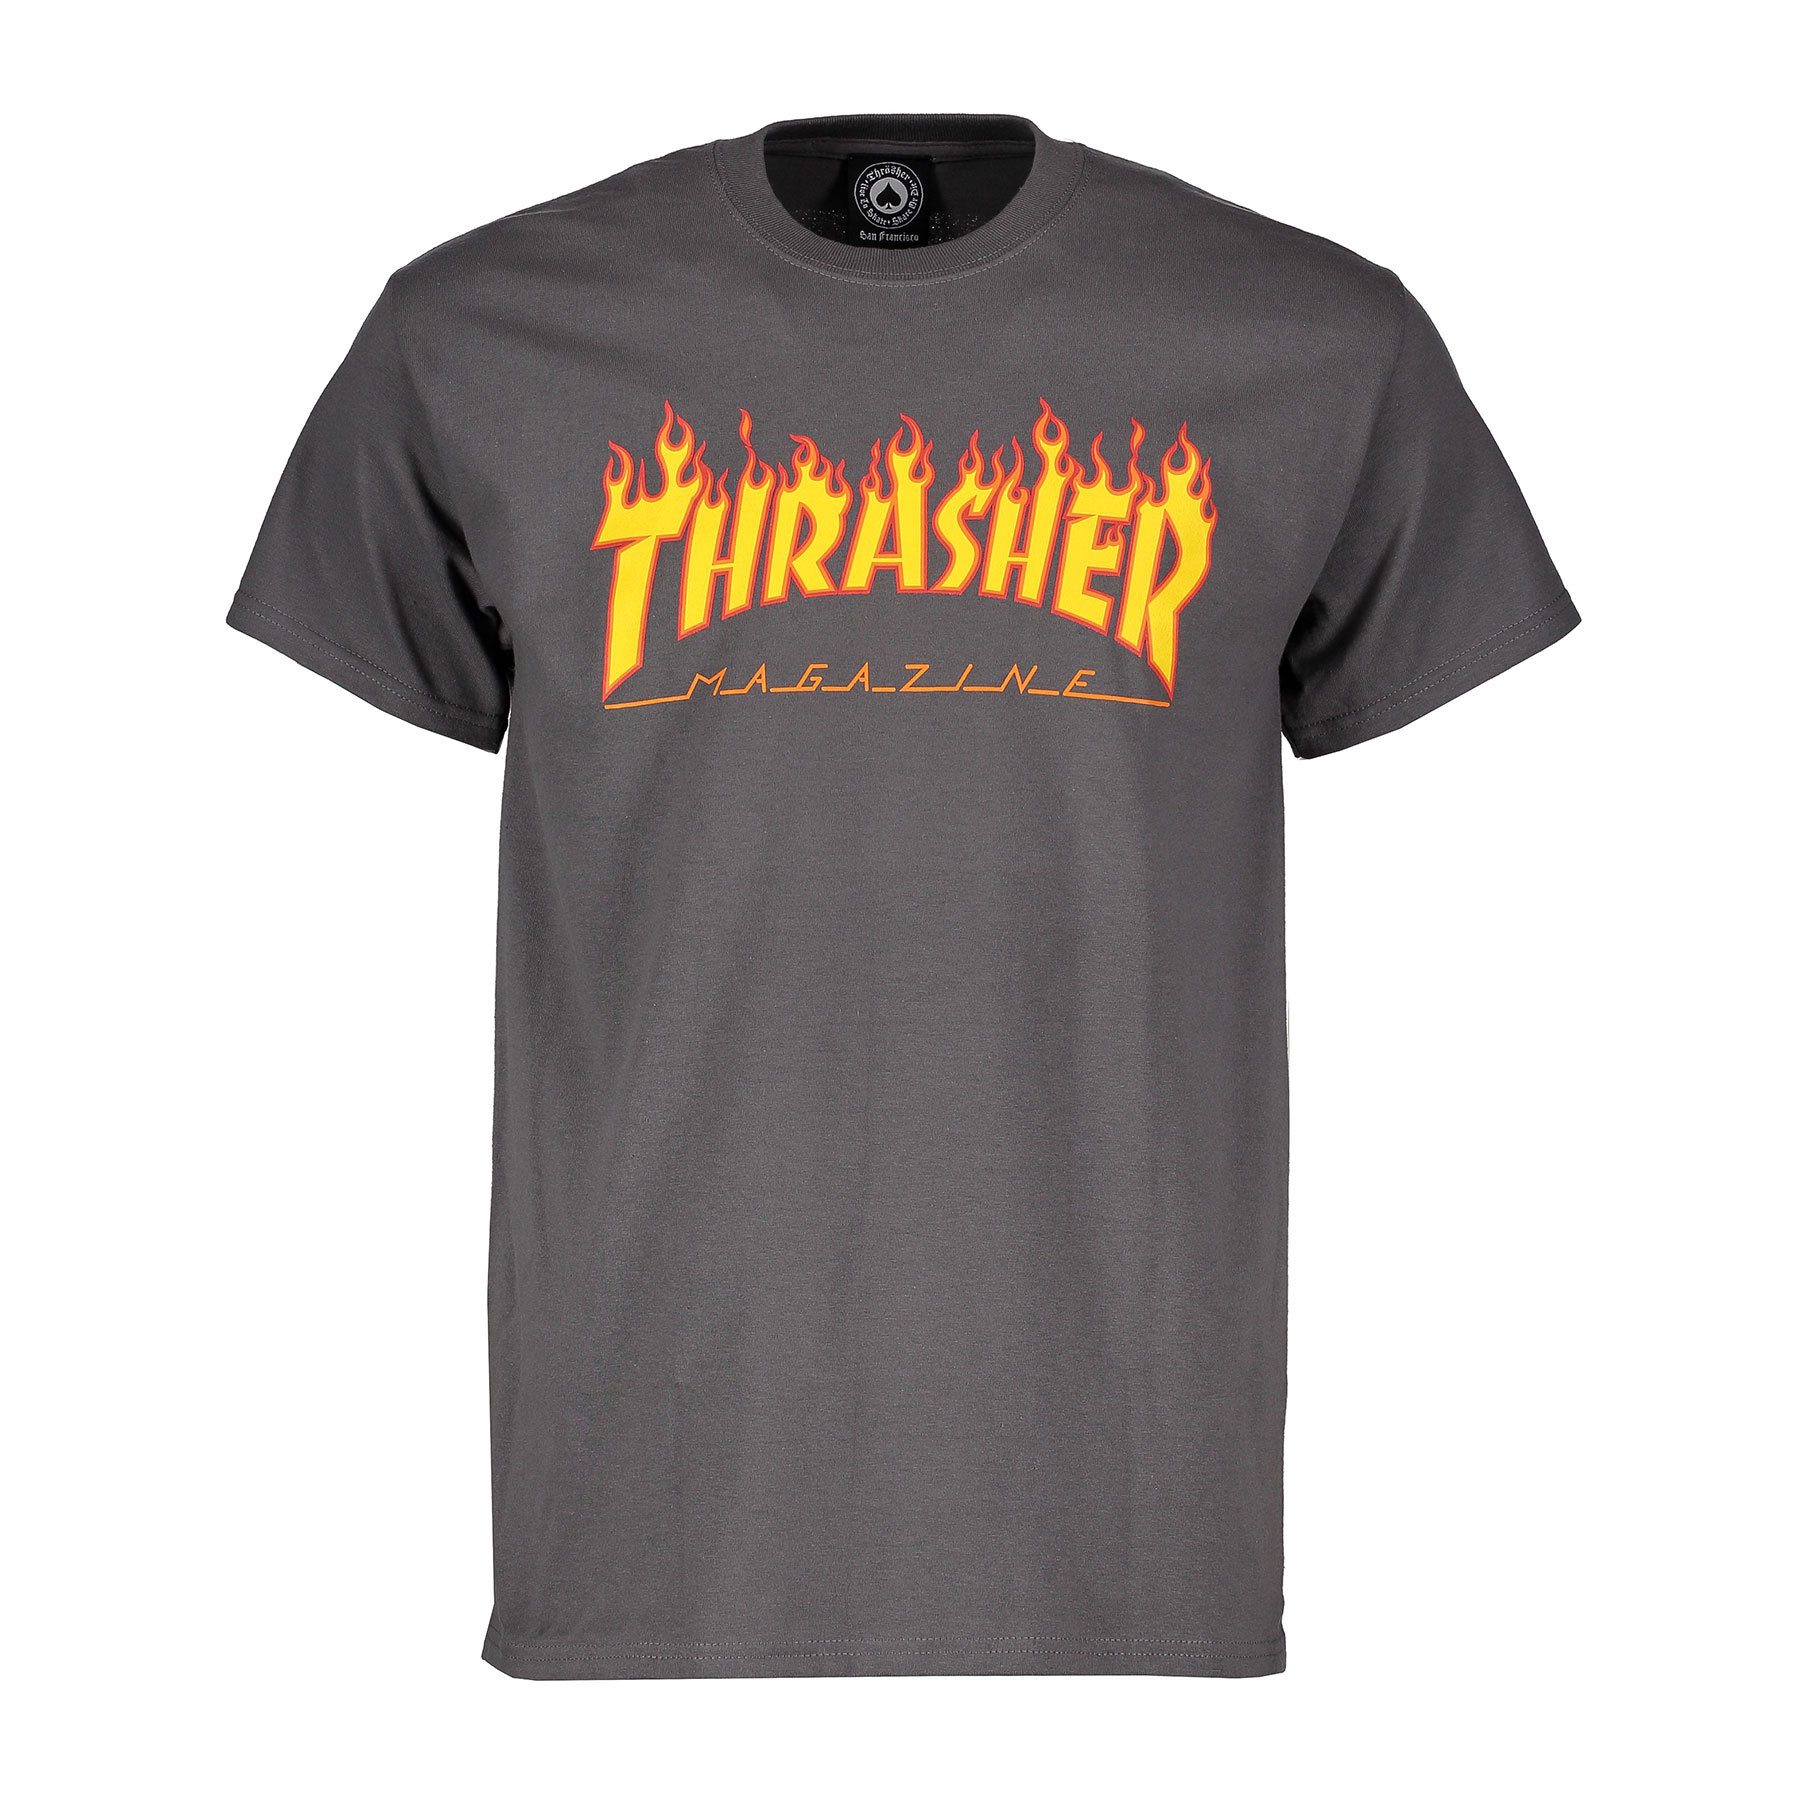 T-shirt Thrasher Magazine Flame logo